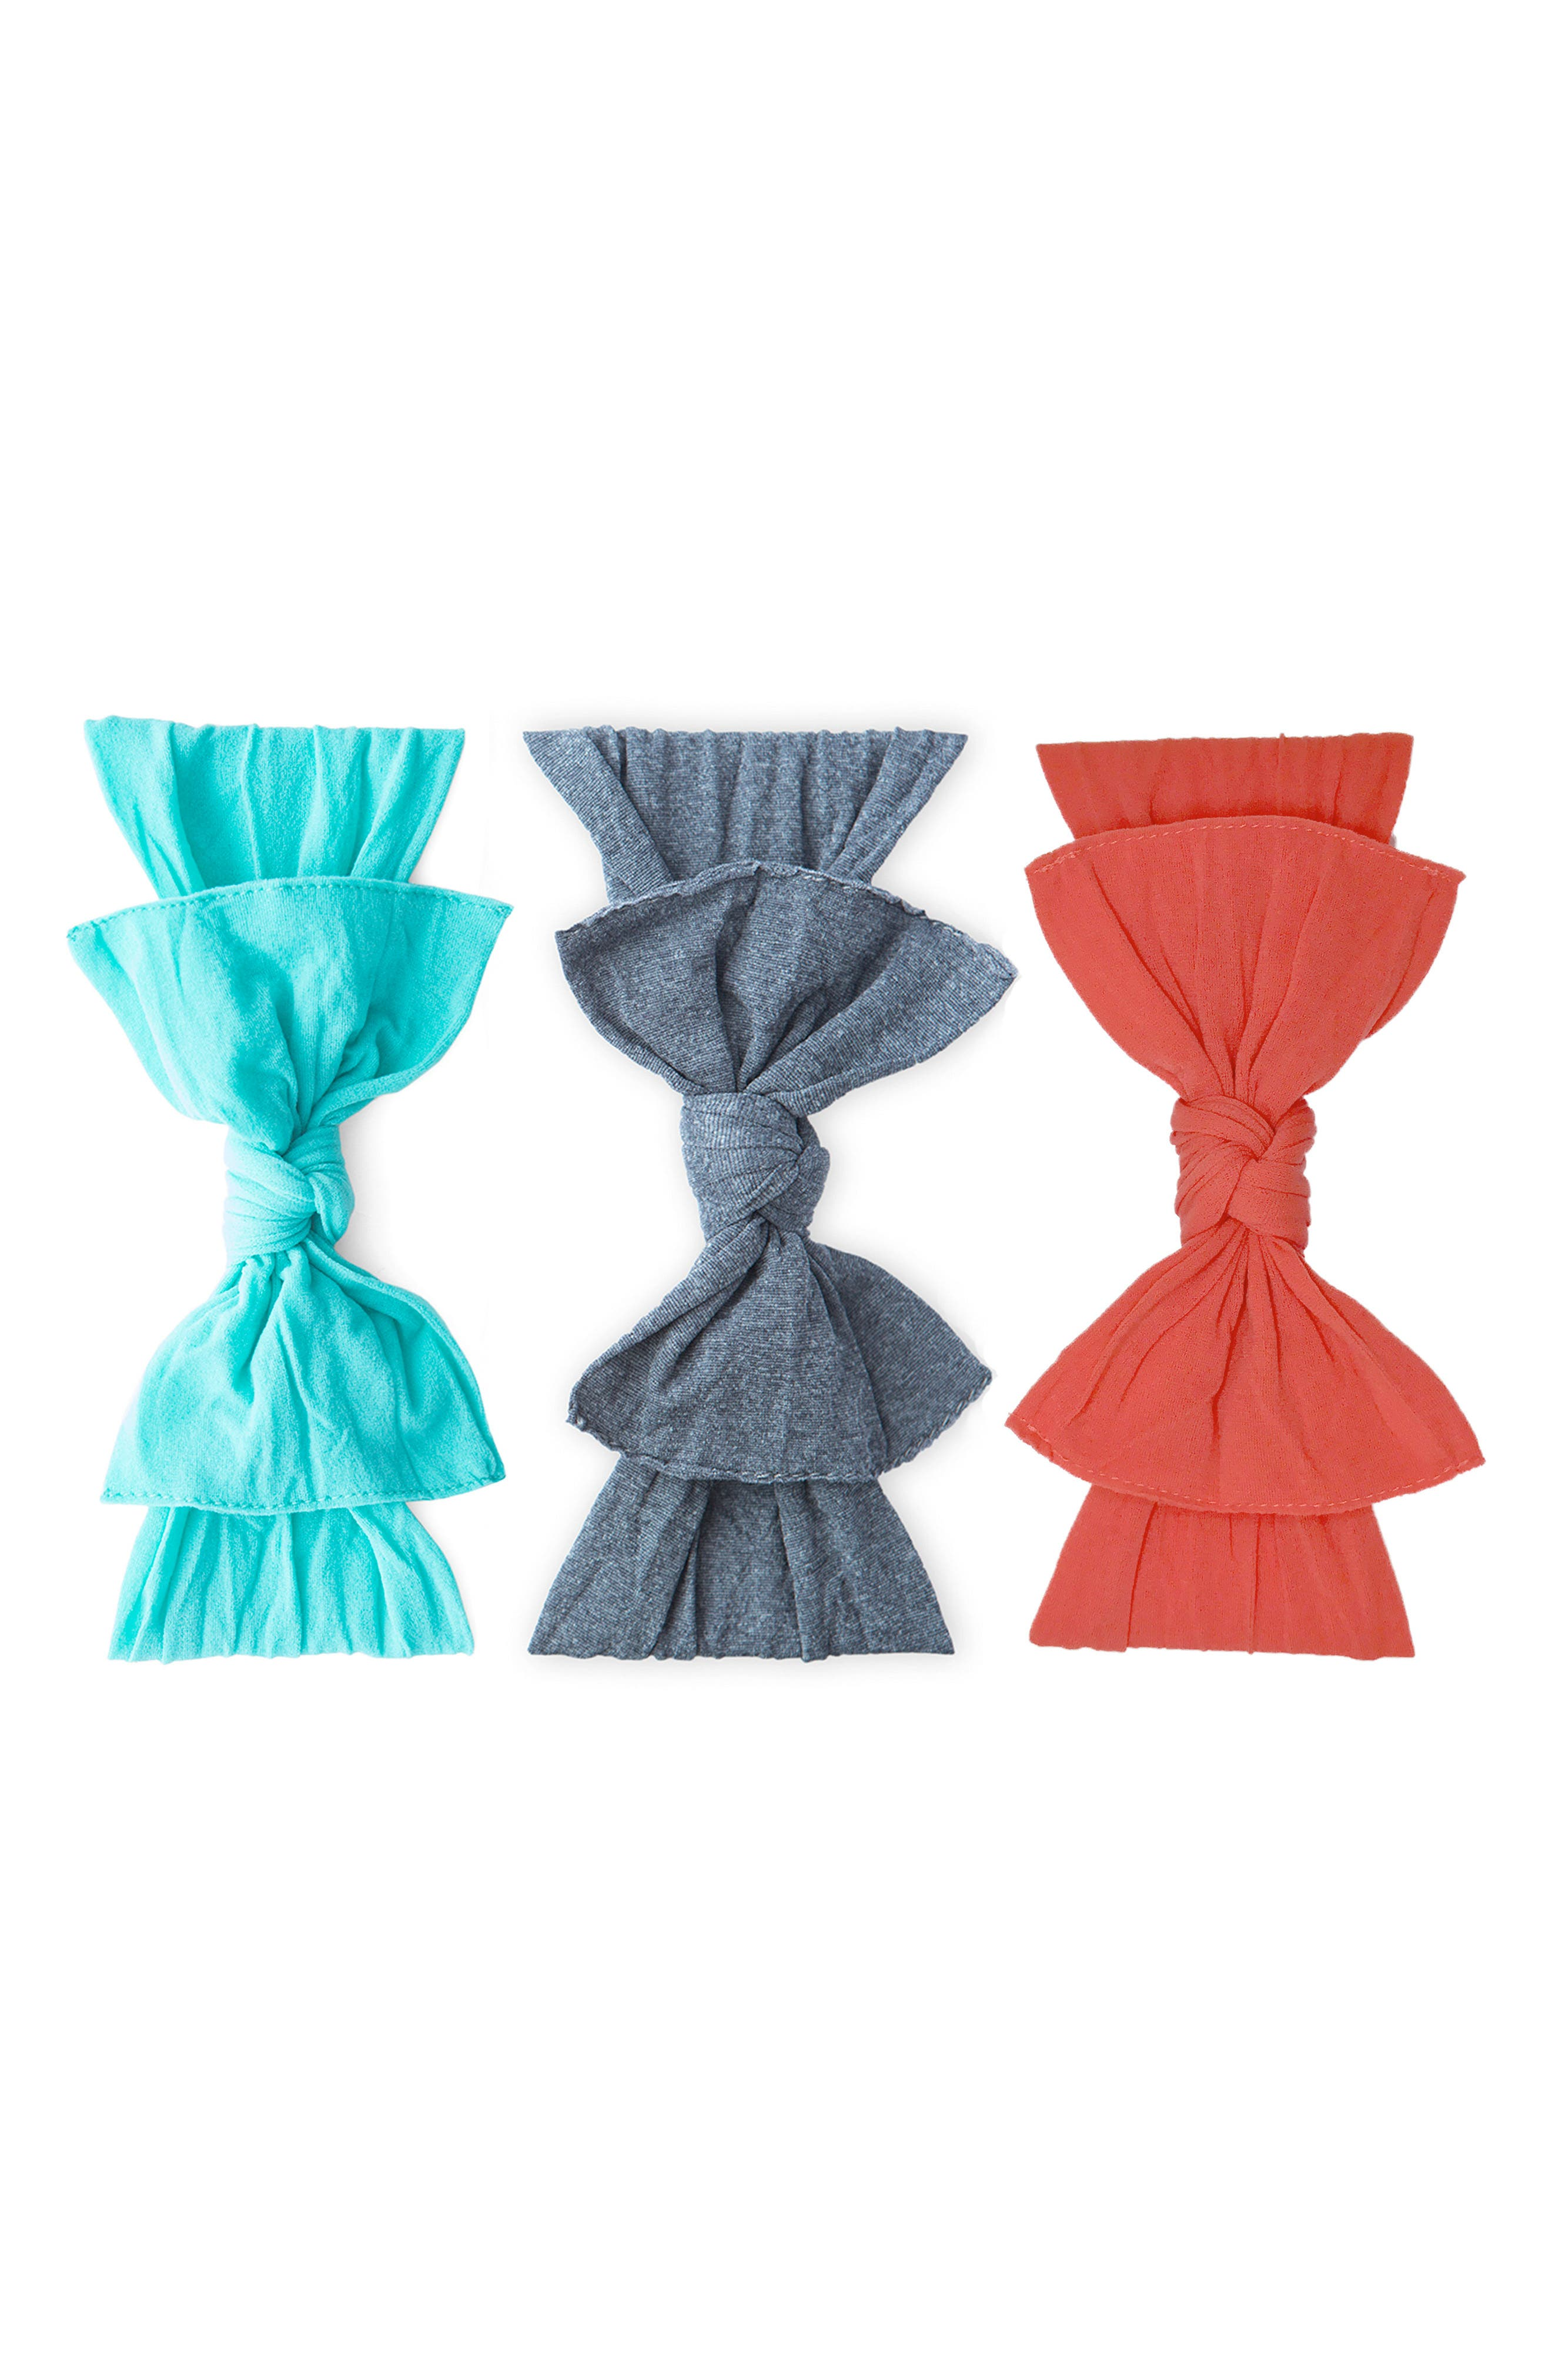 3-Pack Knotted Headbands,                             Main thumbnail 1, color,                             Turquoise/ Heather Char